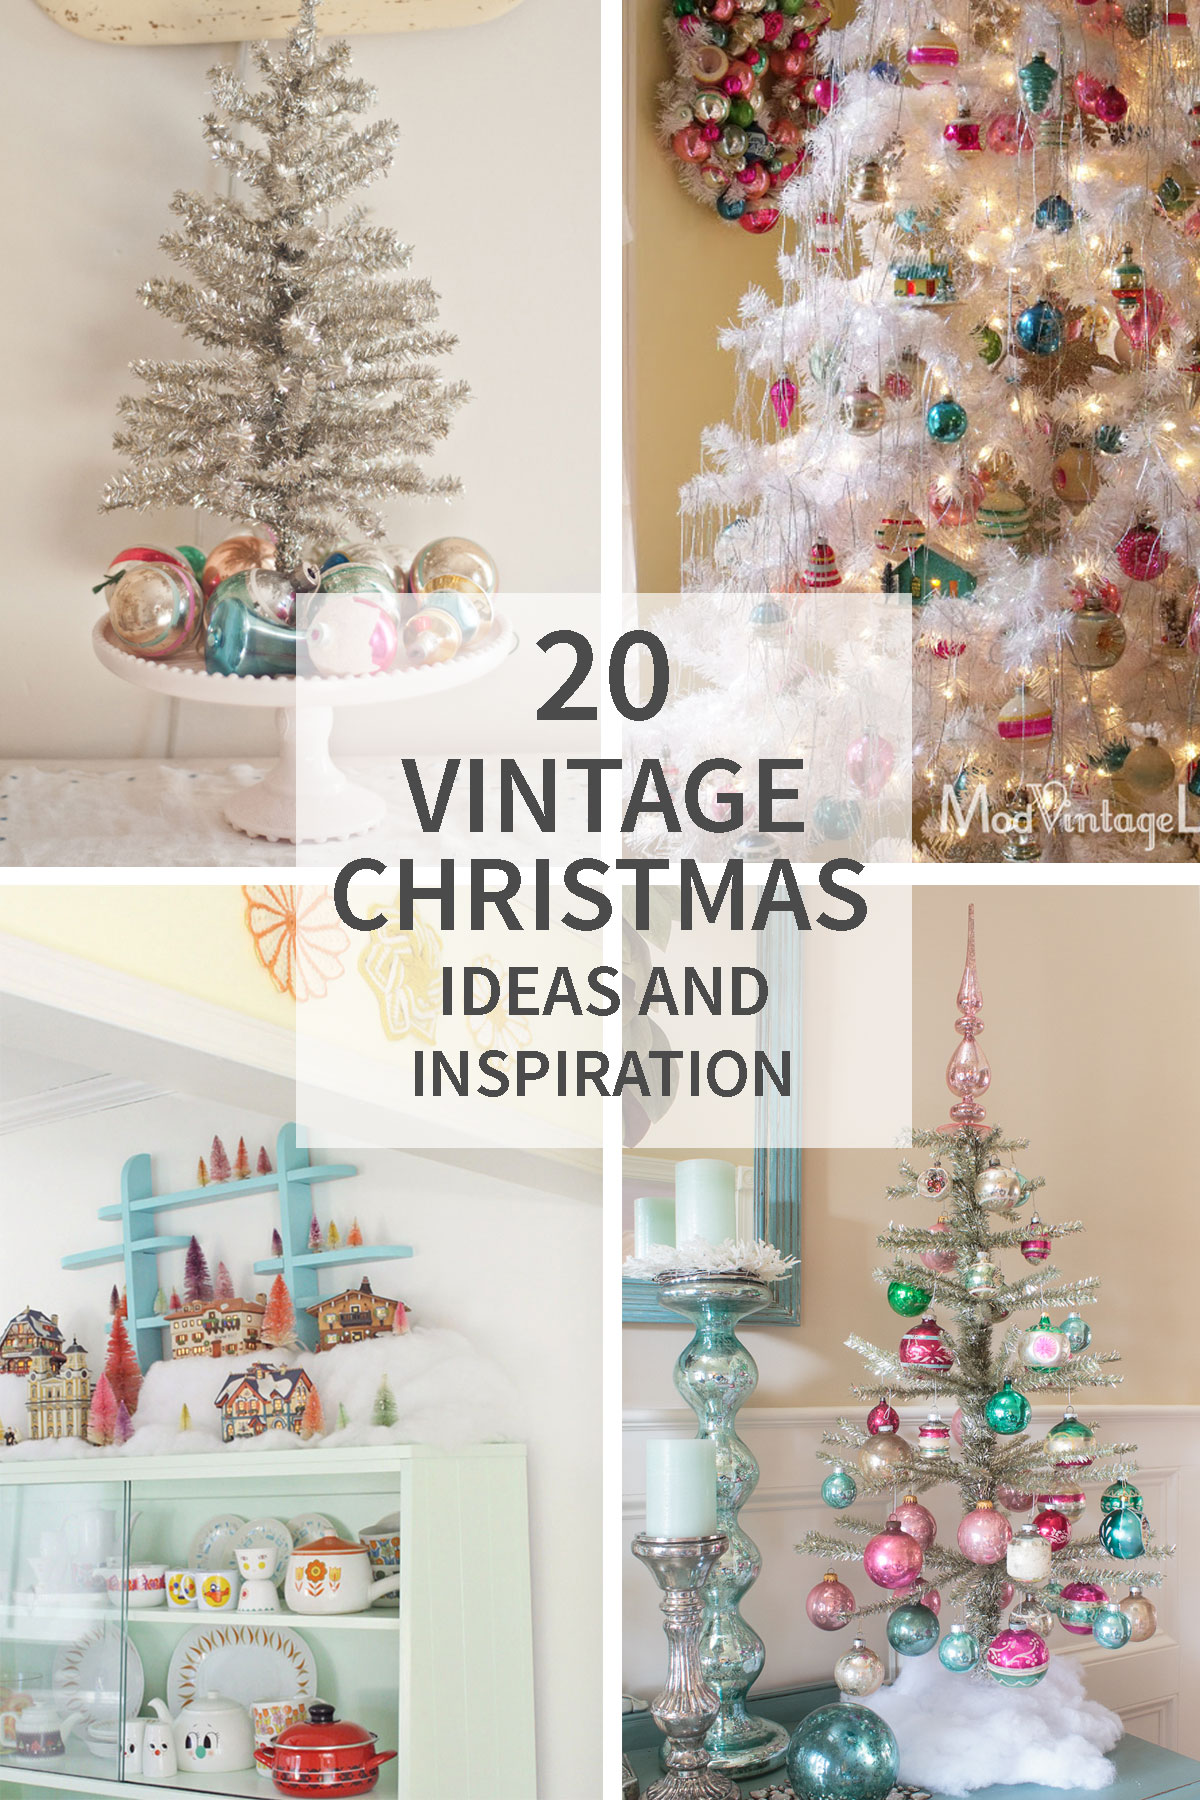 Vintage Christmas Ideas And Inspiration Tidbits